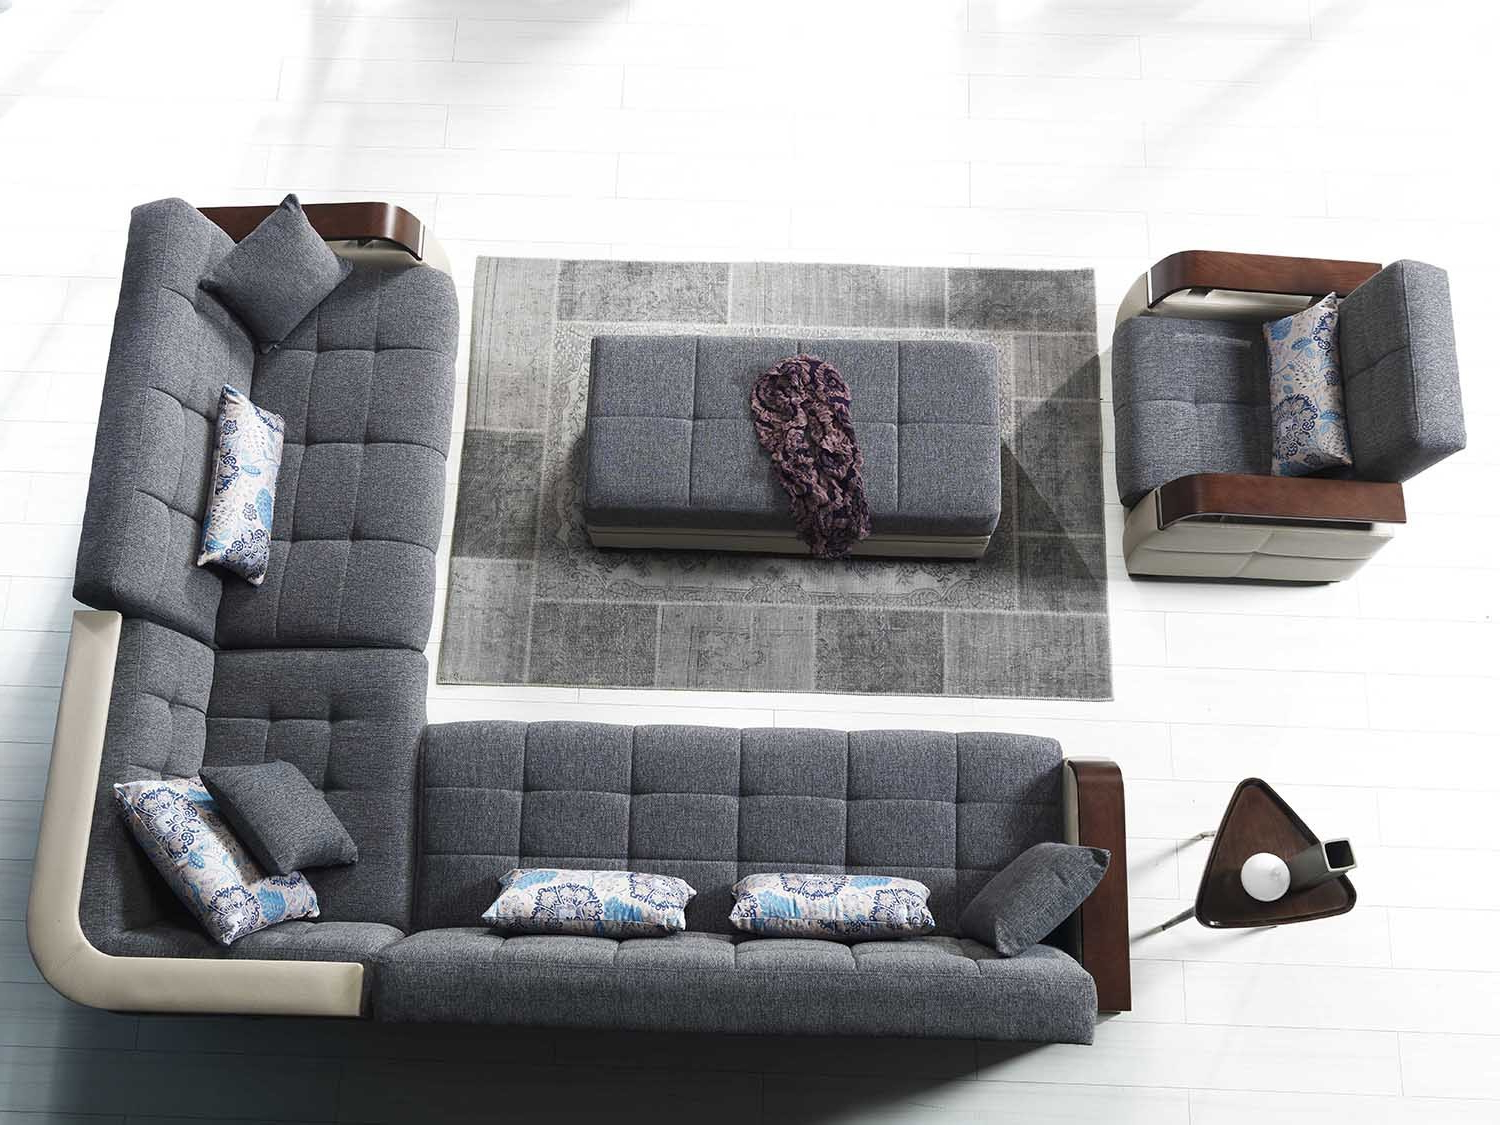 Dancing Sofa Bed Sectional In Nordby Gray – Fabric Within Most Current Prato Storage Sectional Futon Sofas (View 25 of 25)